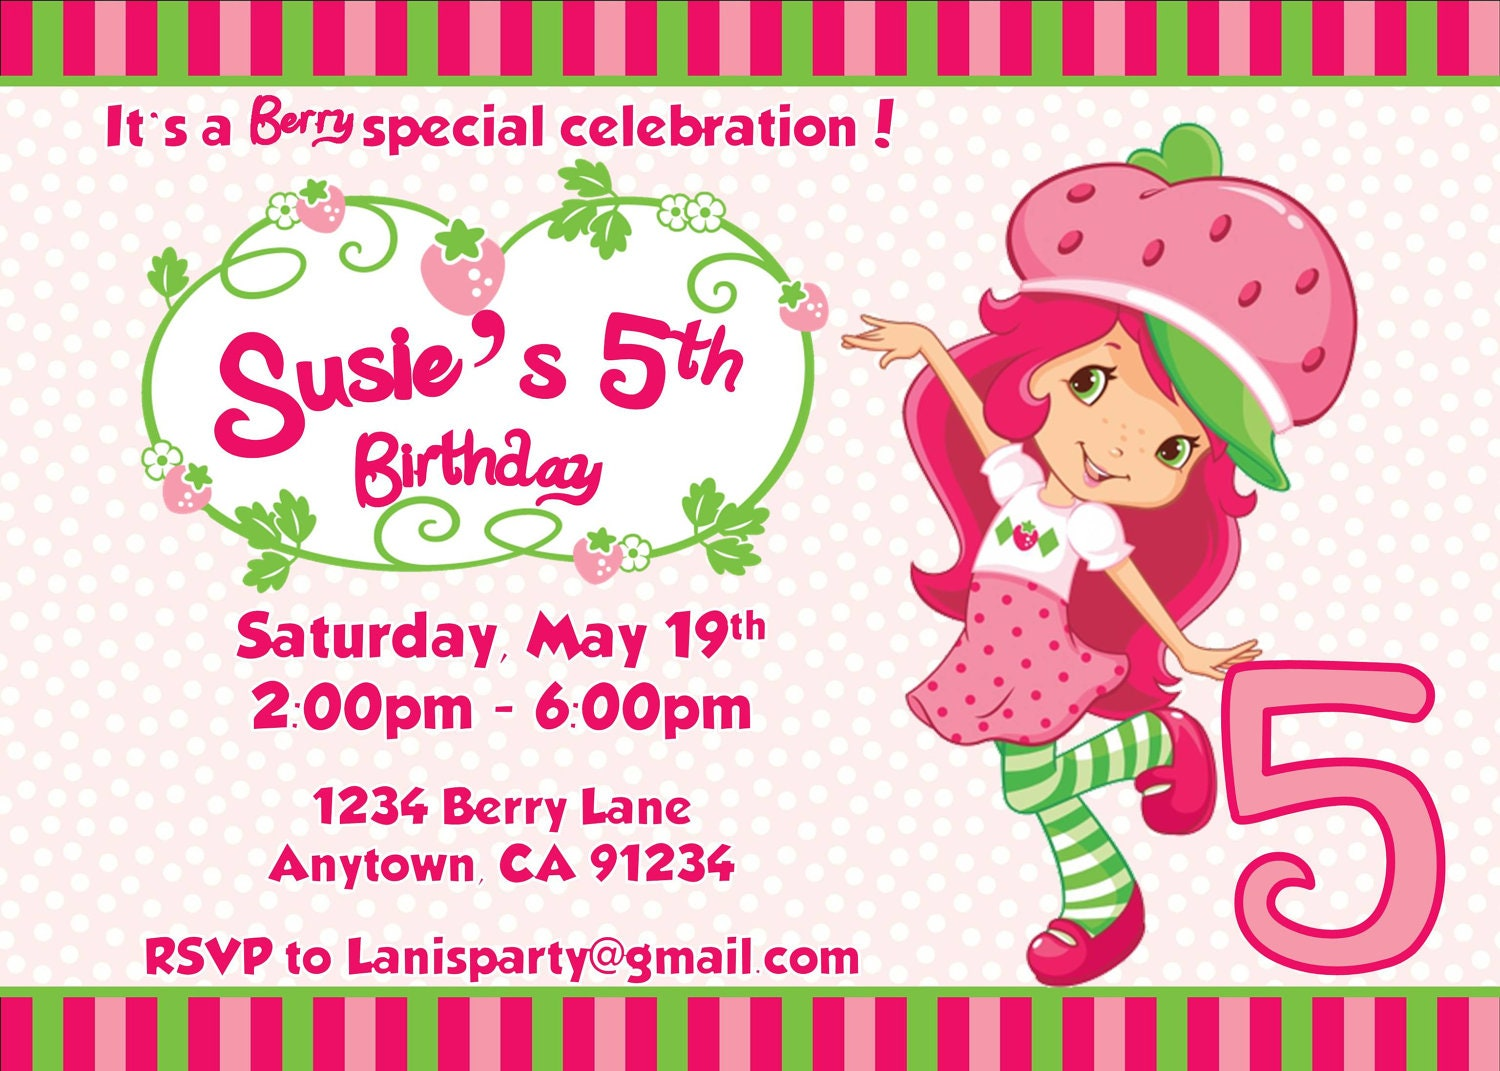 Baby Shower Invites Girl is best invitations ideas